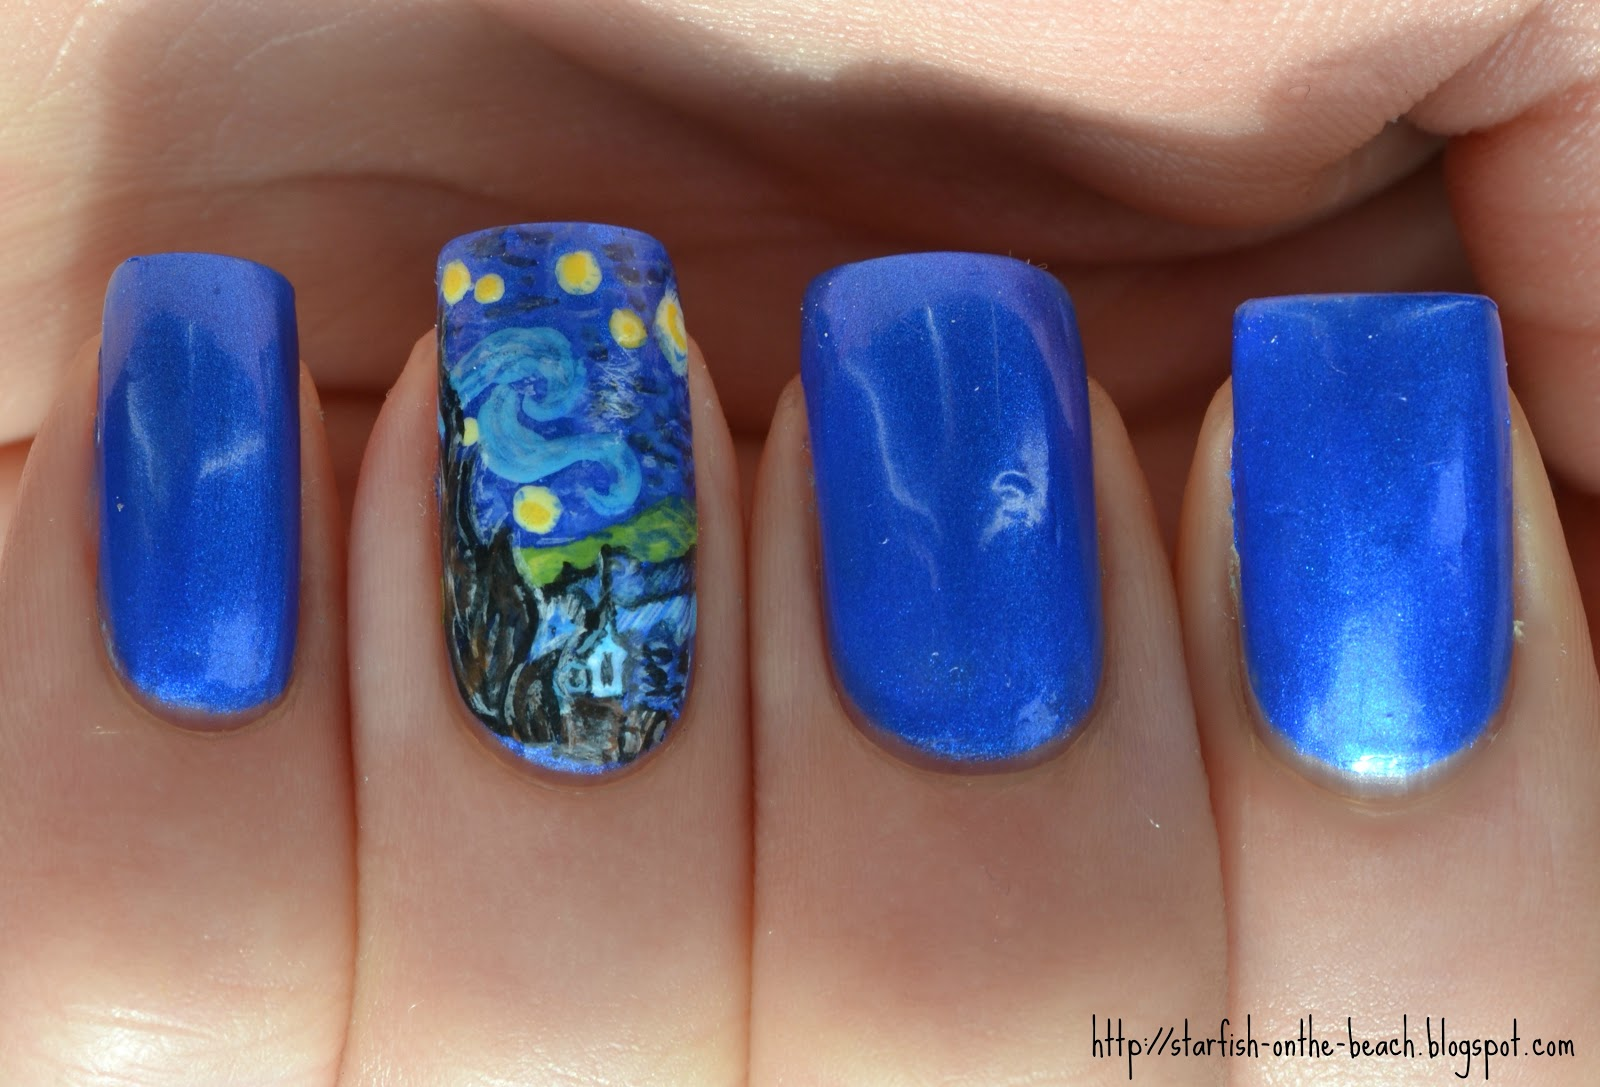 Starfish on the Beach: 31 Day Nail Art Challenge --- Day 27, Artwork ...